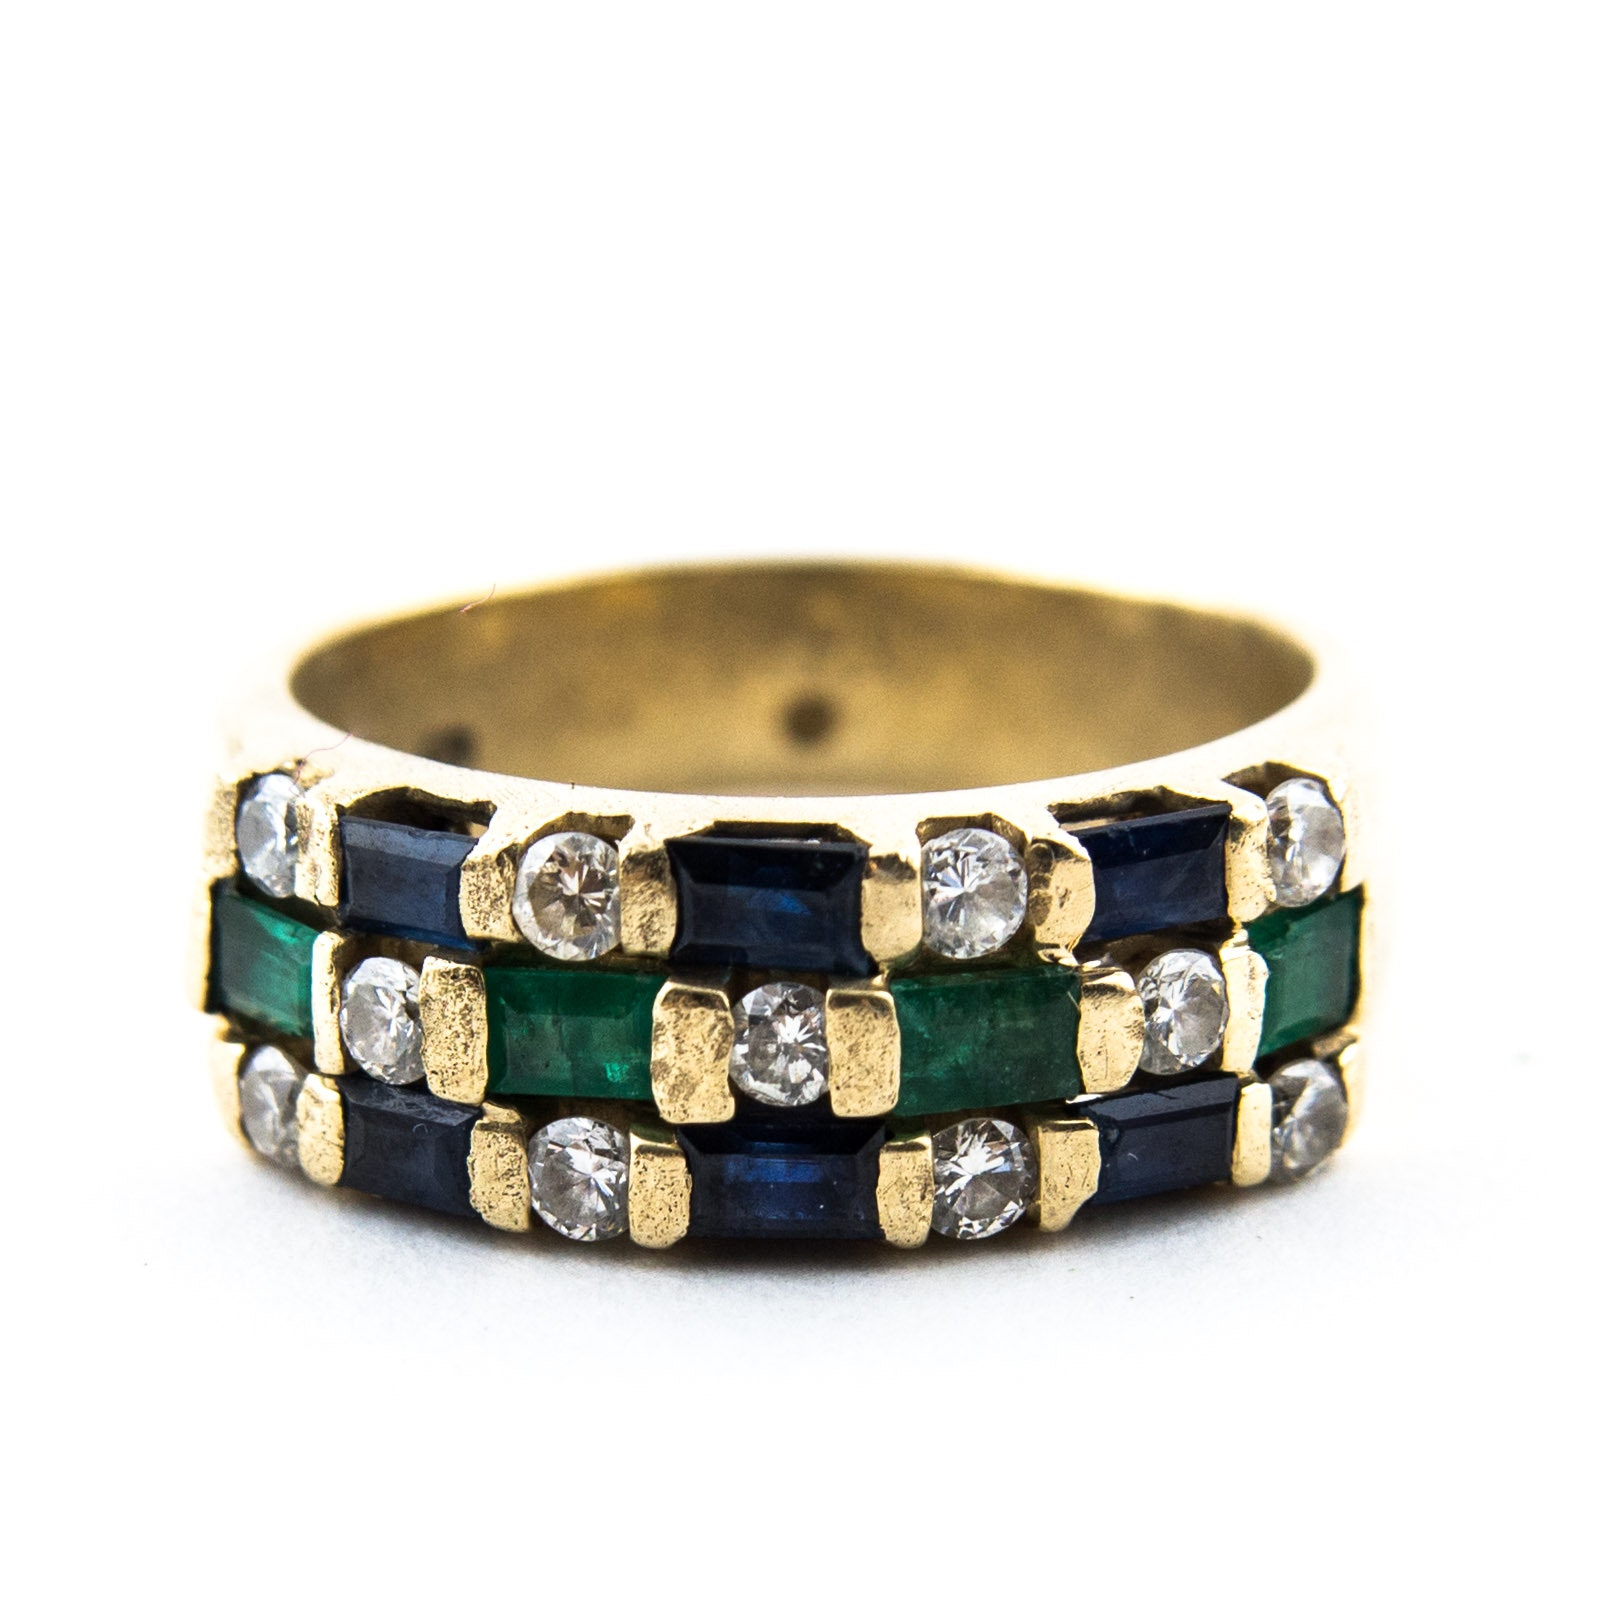 14K Yellow Gold, Diamond, Sapphire, and Emerald Ring